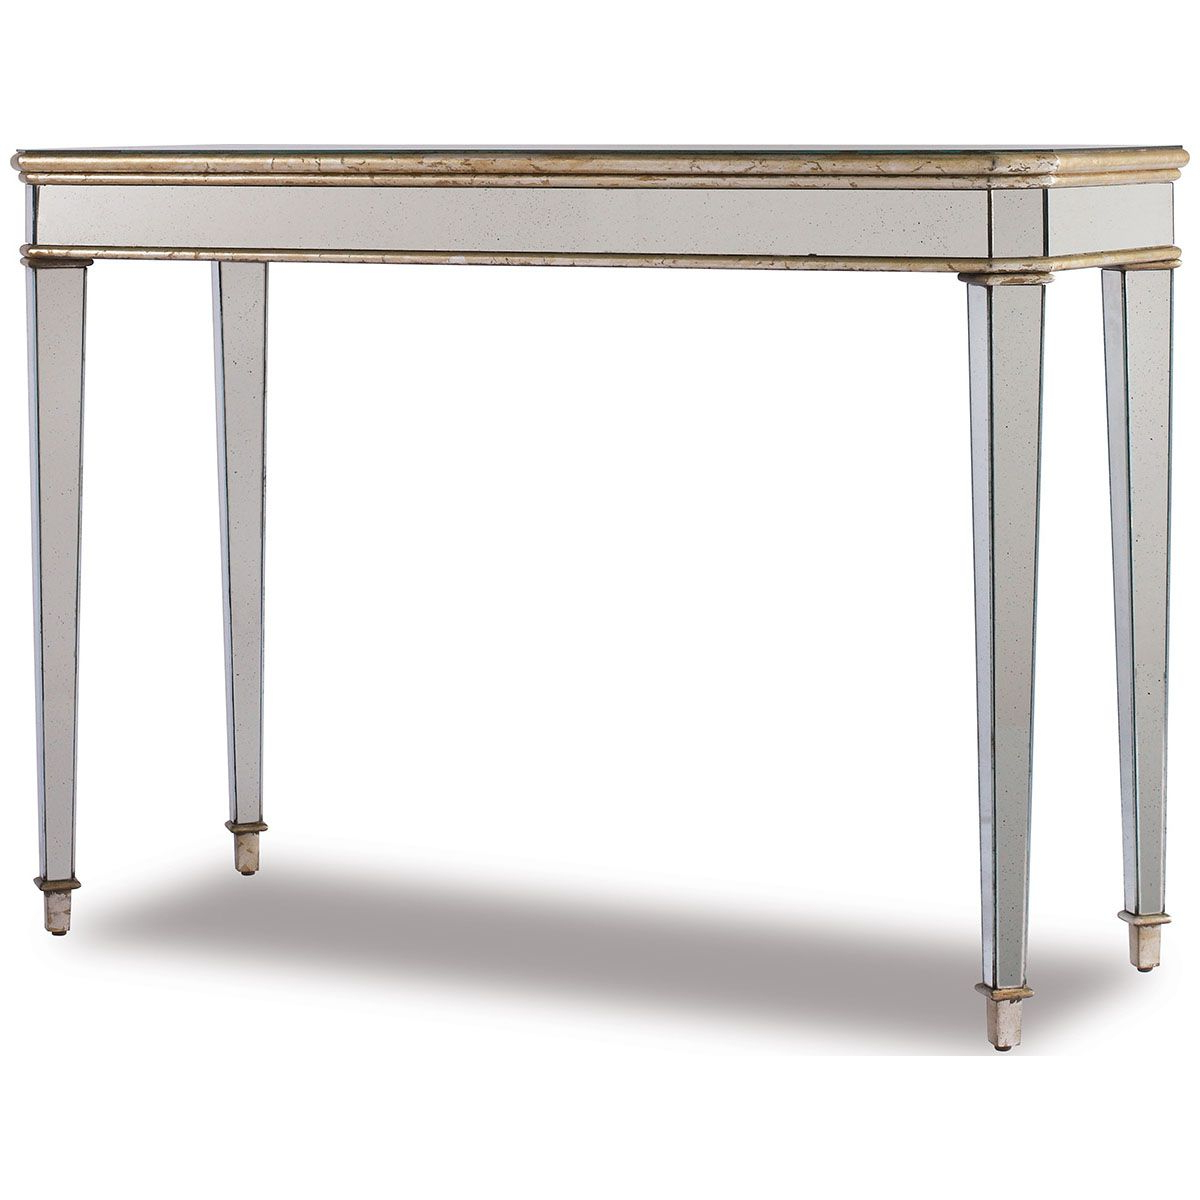 Hooker Furniture Mirrored Console Table 500 50 779 | Hooker In Kyra Console Tables (View 1 of 20)